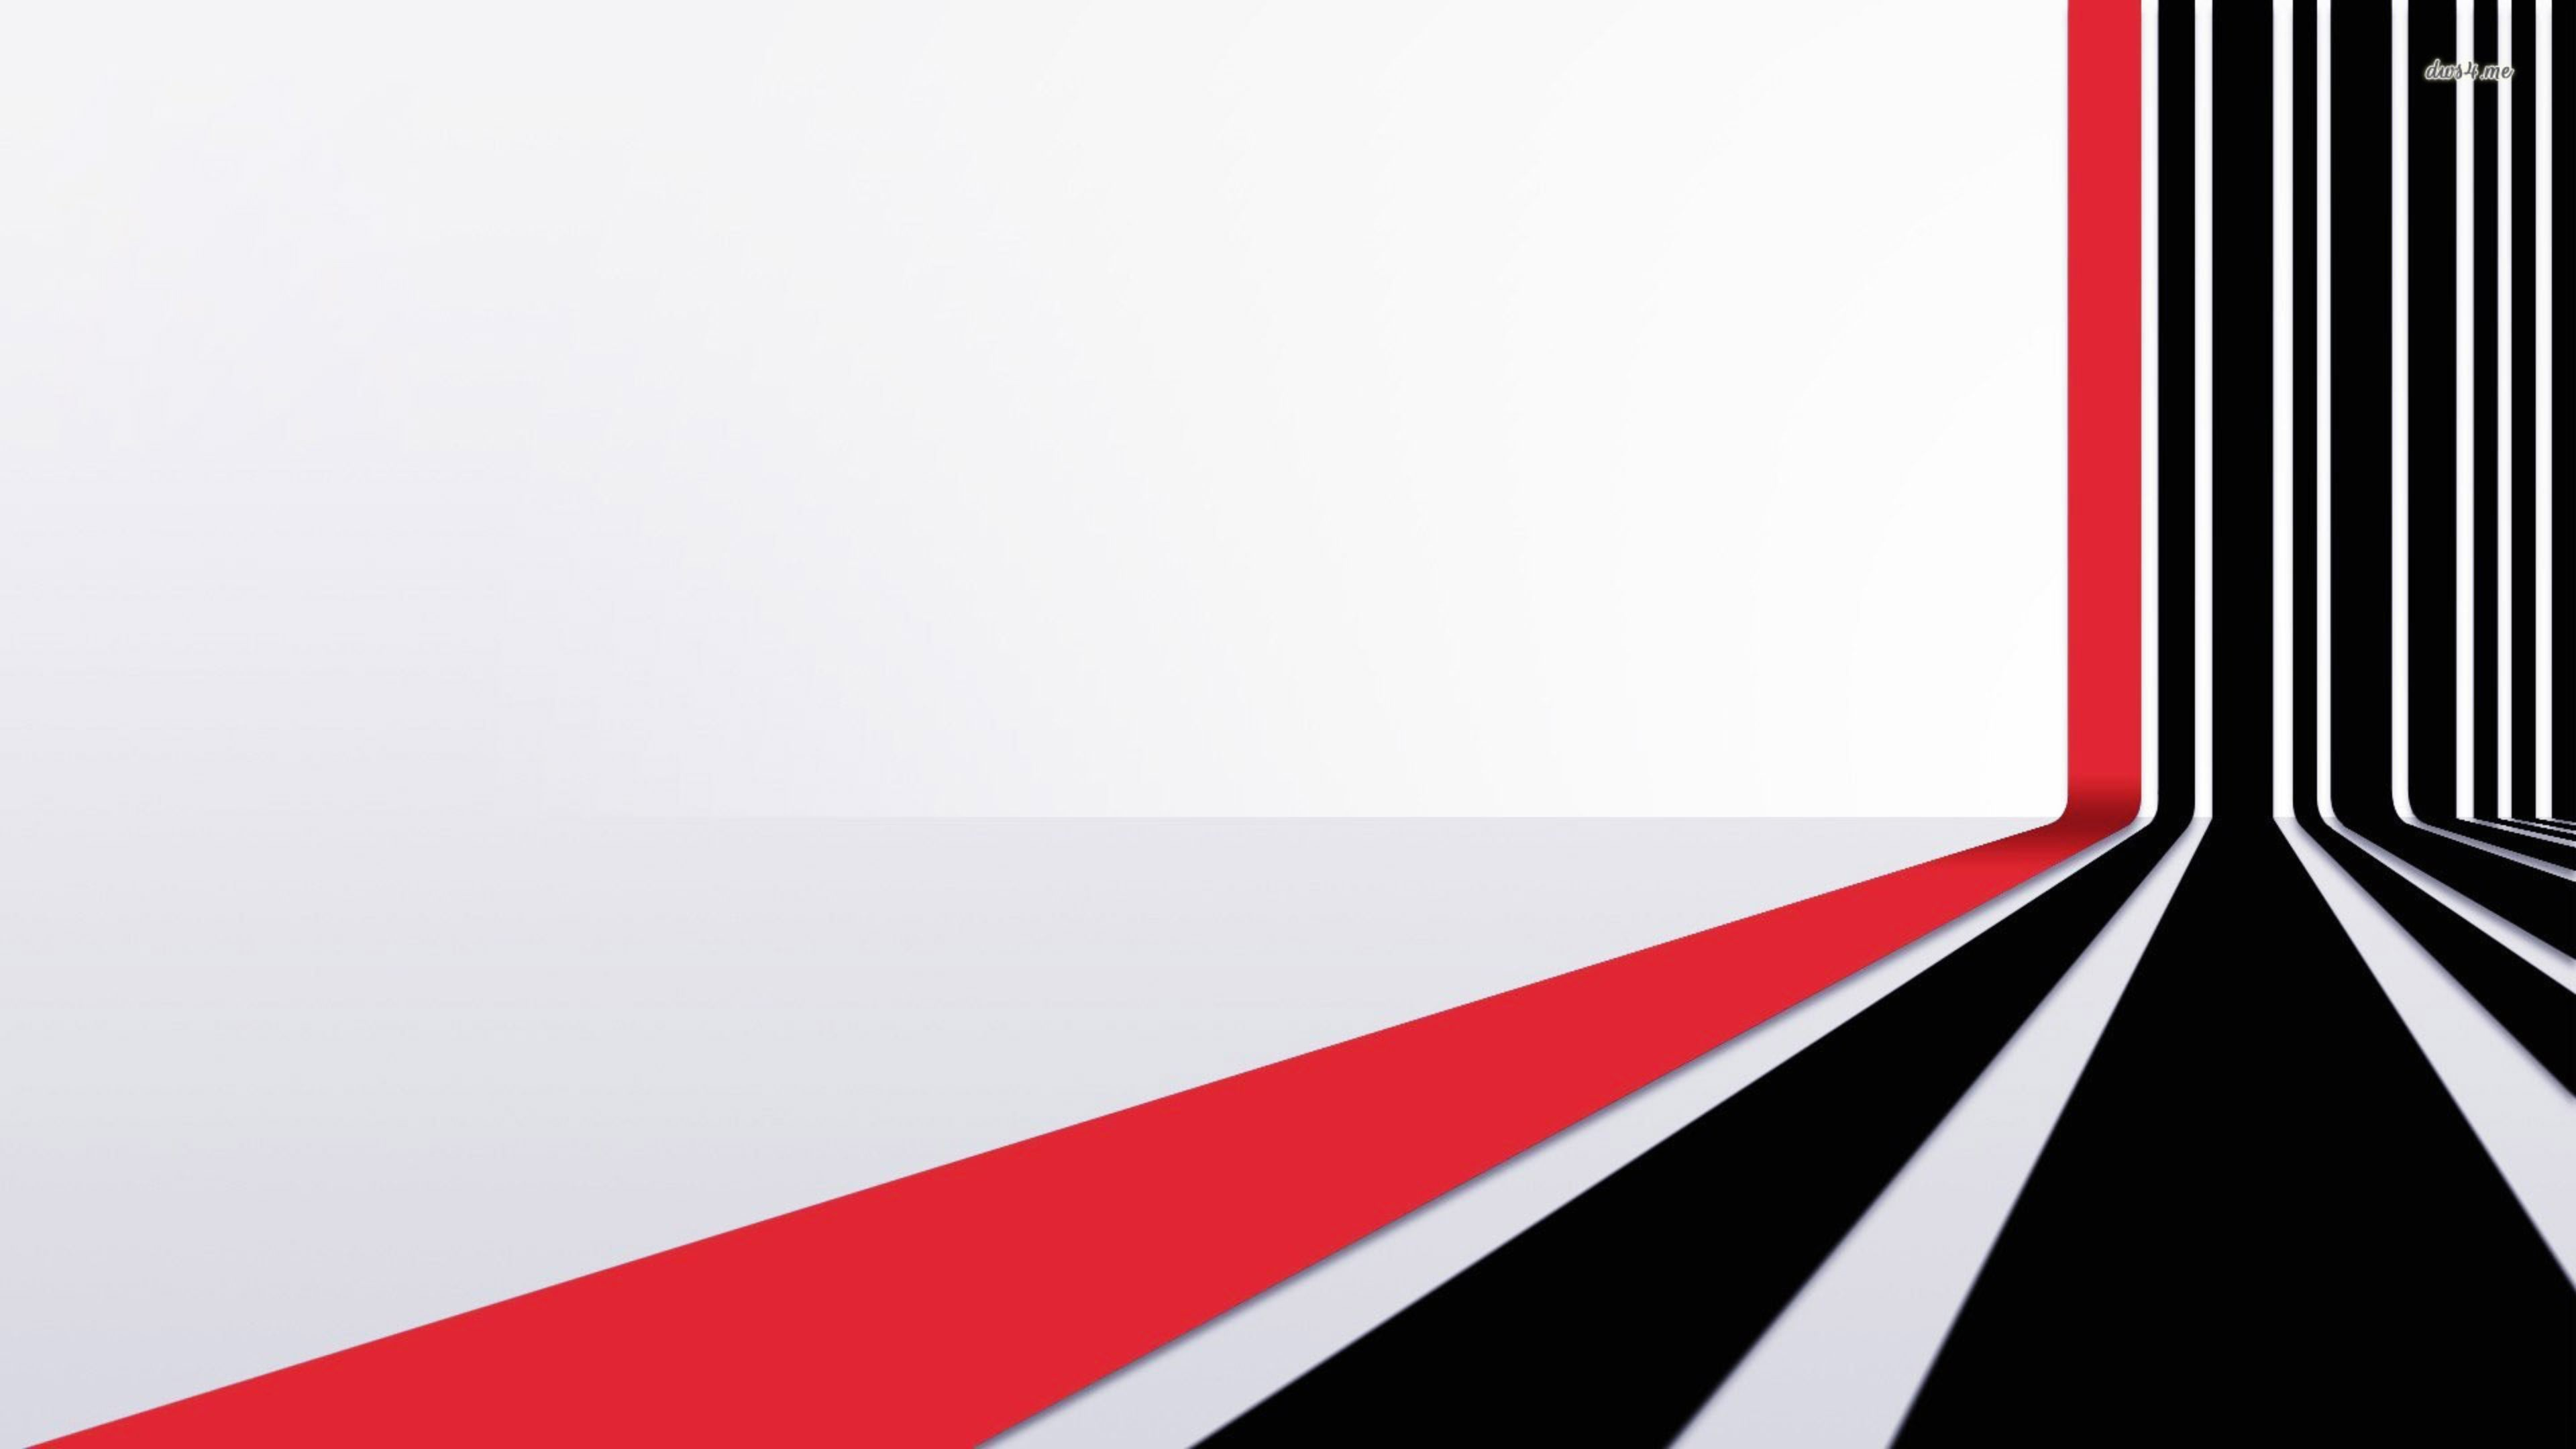 Red White And Black Wallpaper 4k Red And Black Wallpaper